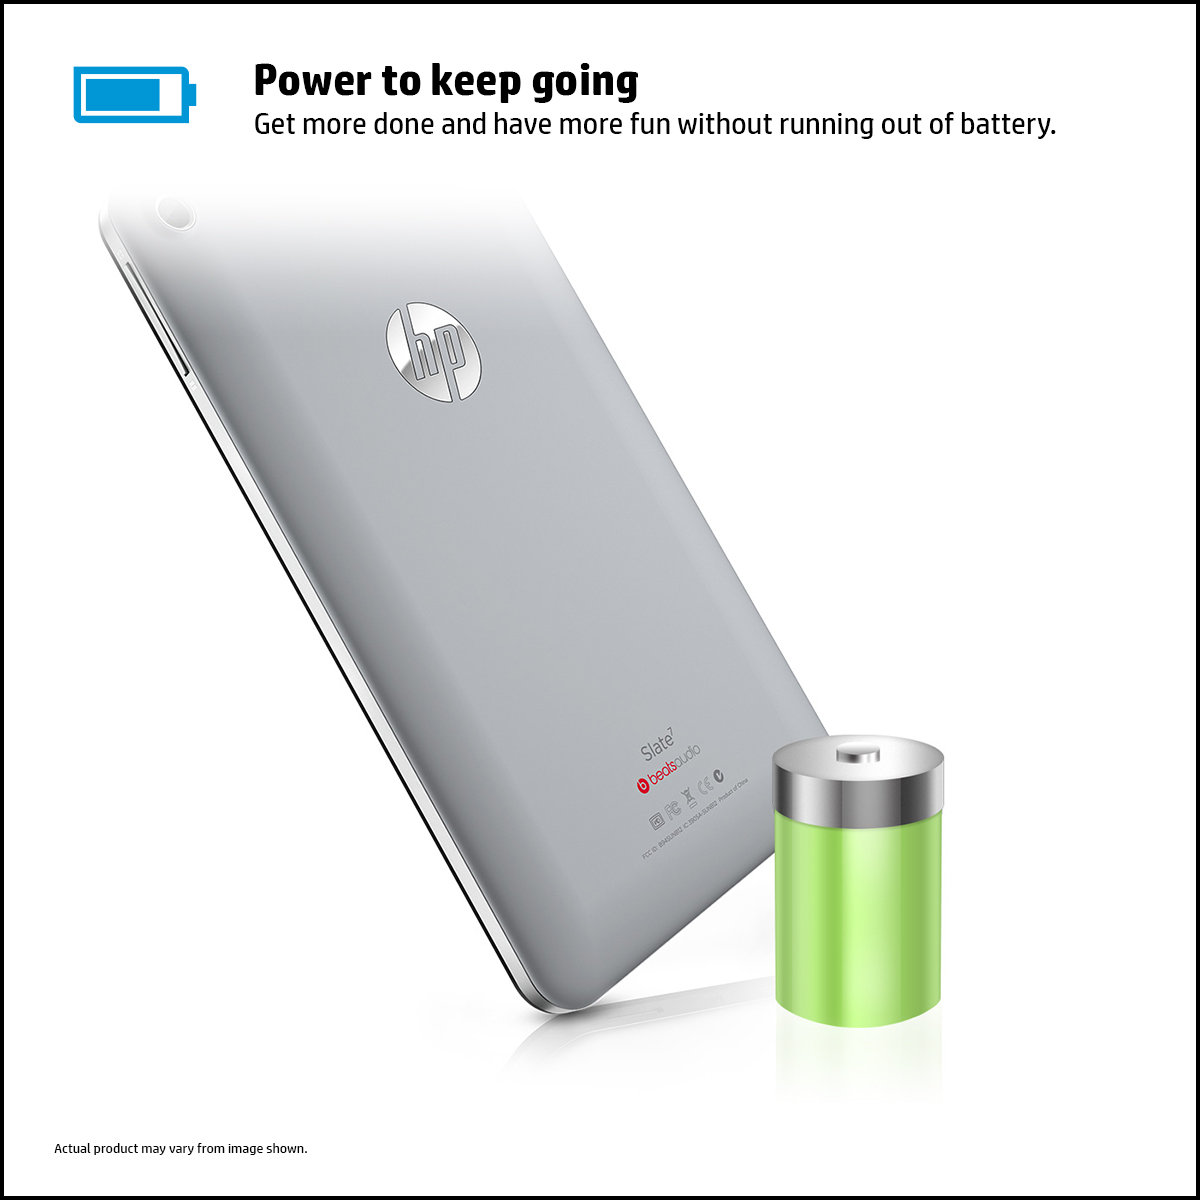 Get more done and have more fun without running out of battery